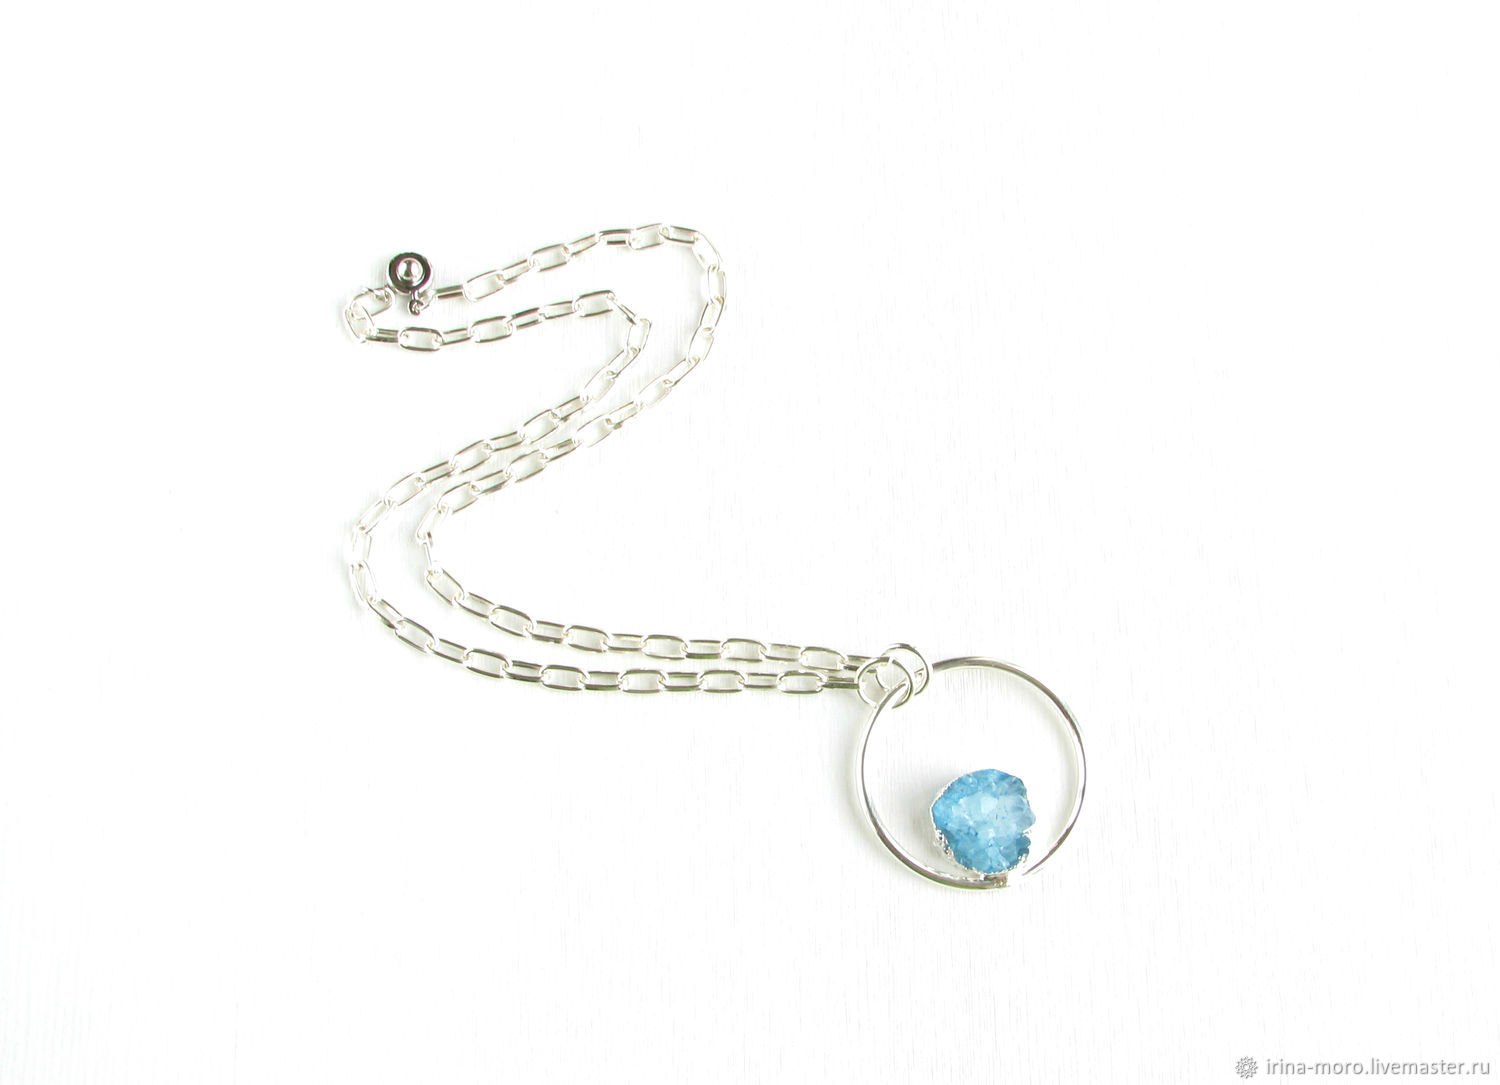 Blue pendant with quartz 'Winter lake' pendant with blue stone, Pendants, Moscow,  Фото №1